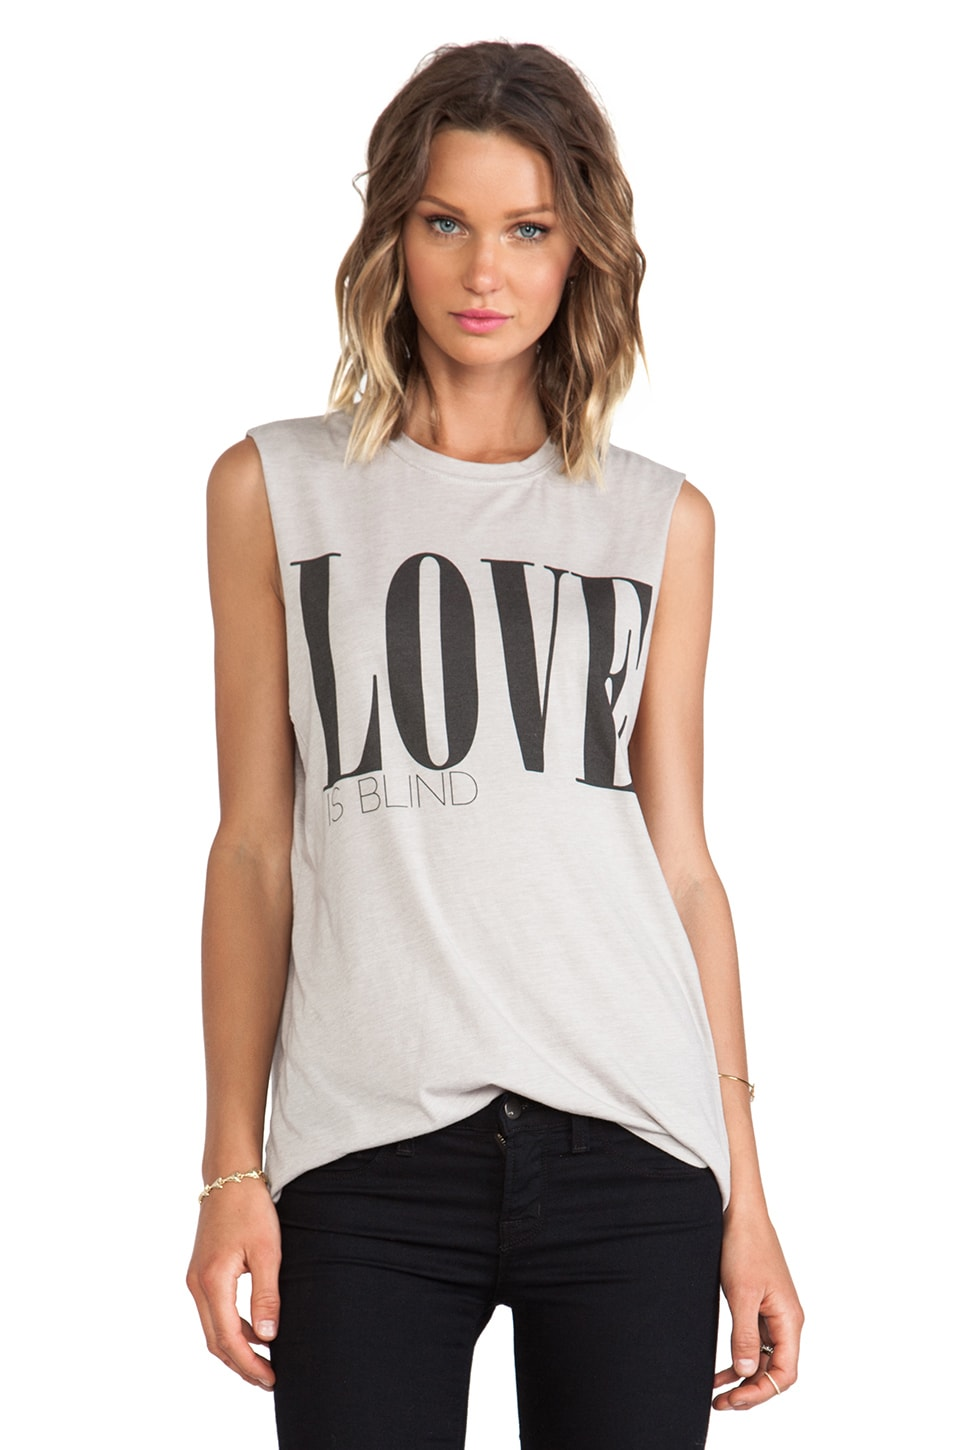 The Laundry Room Love is Blind Muscle Tee in Grey